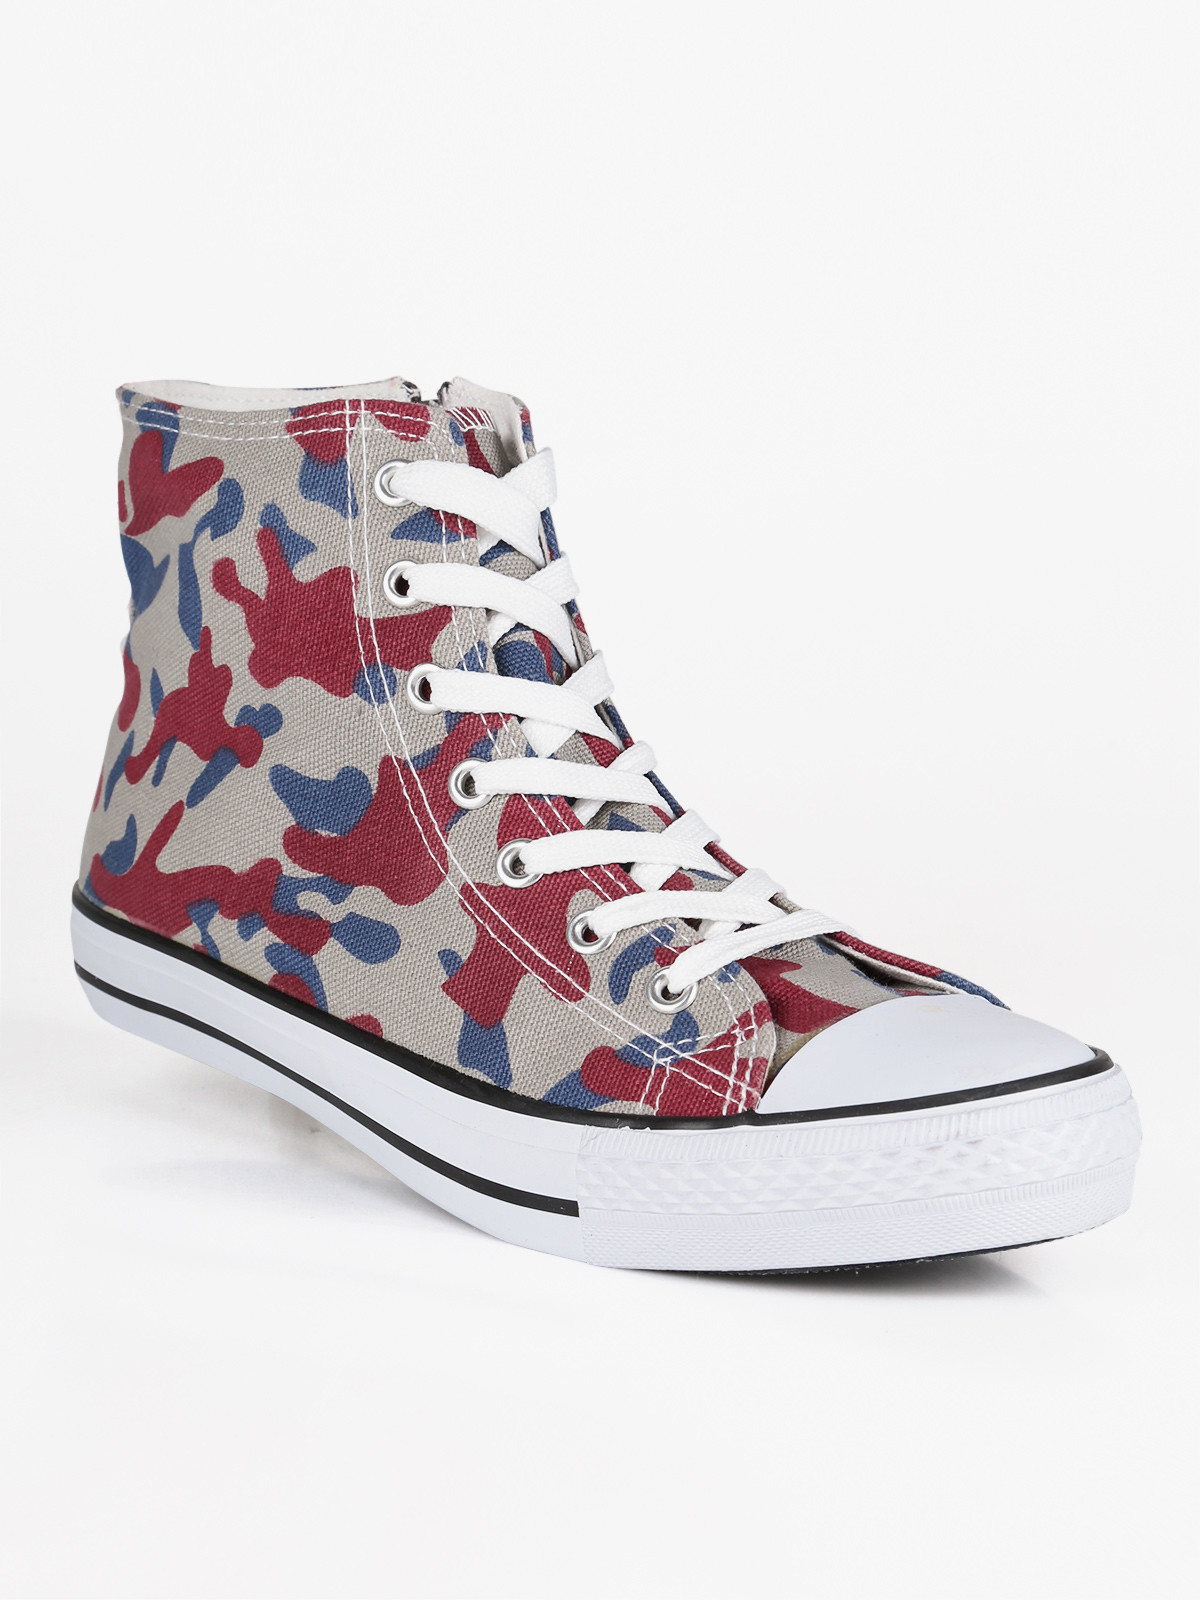 Woman Camouflage Ankle-high Sneaker Flat Bottom Sports Shoes